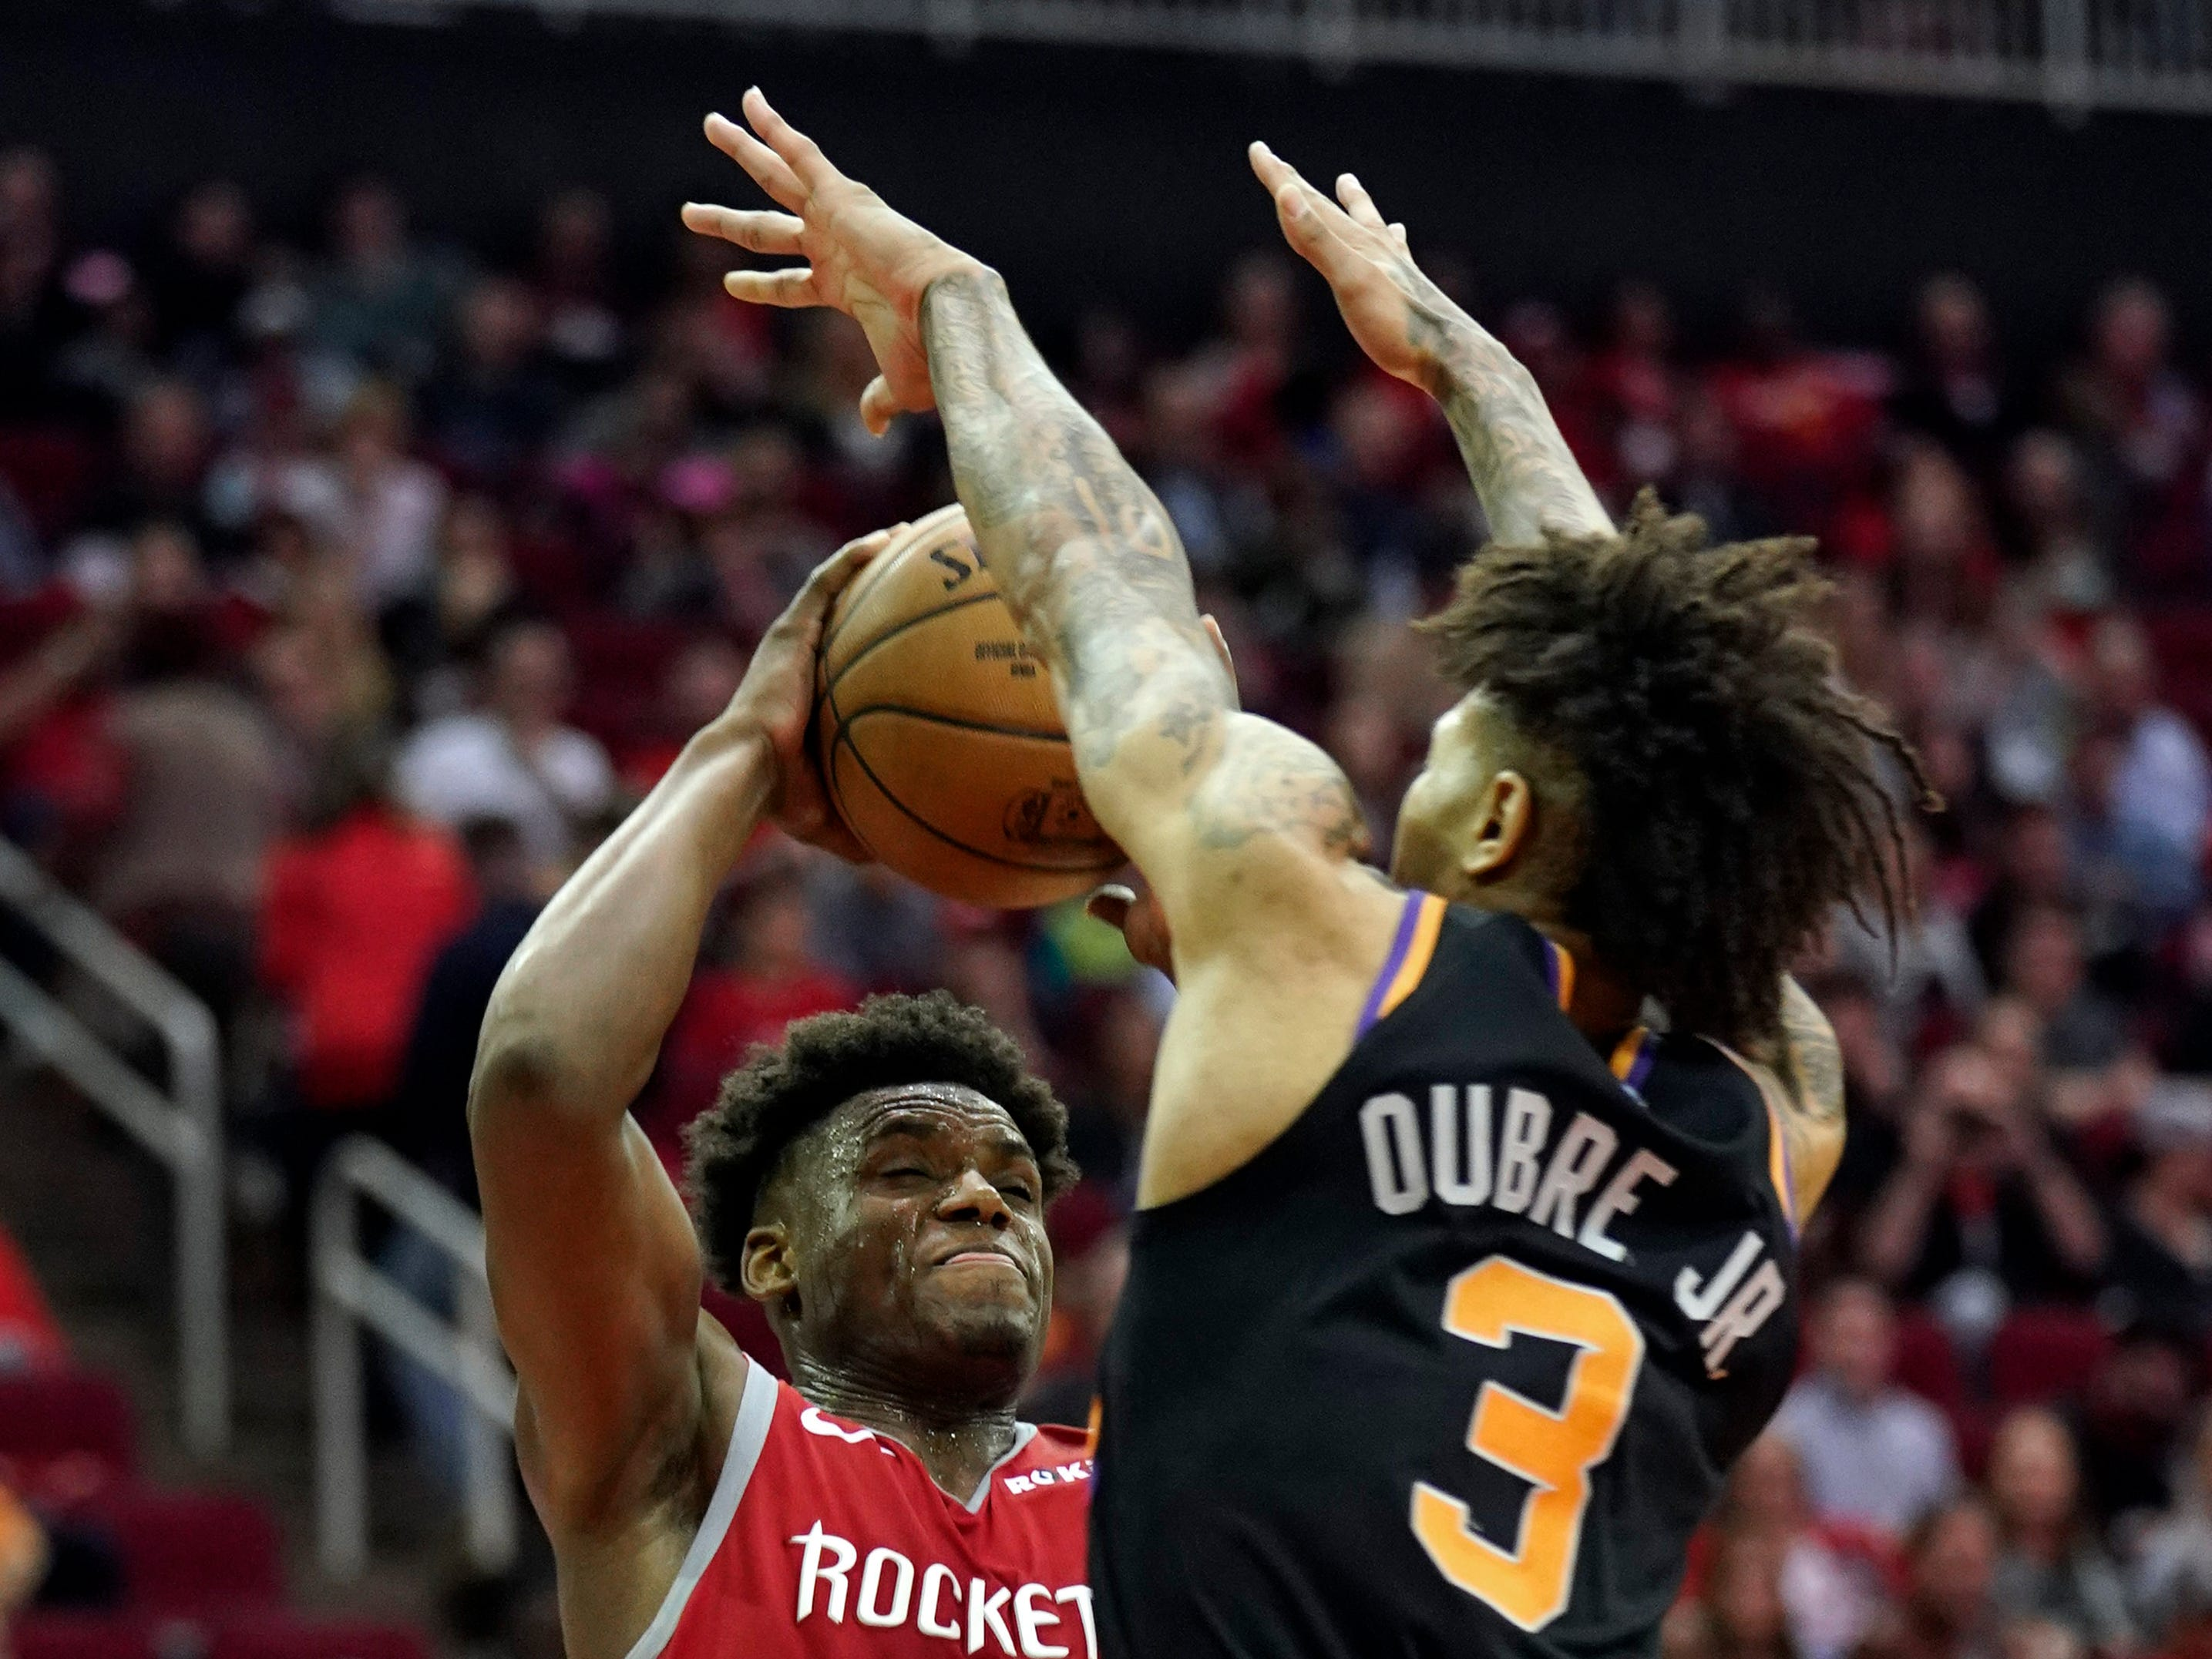 Houston Rockets' Danuel House Jr. (4) shoots as Phoenix Suns' Kelly Oubre Jr. (3) defends during the second half of an NBA basketball game Friday, March 15, 2019, in Houston. The Rockets won 108-102. (AP Photo/David J. Phillip)